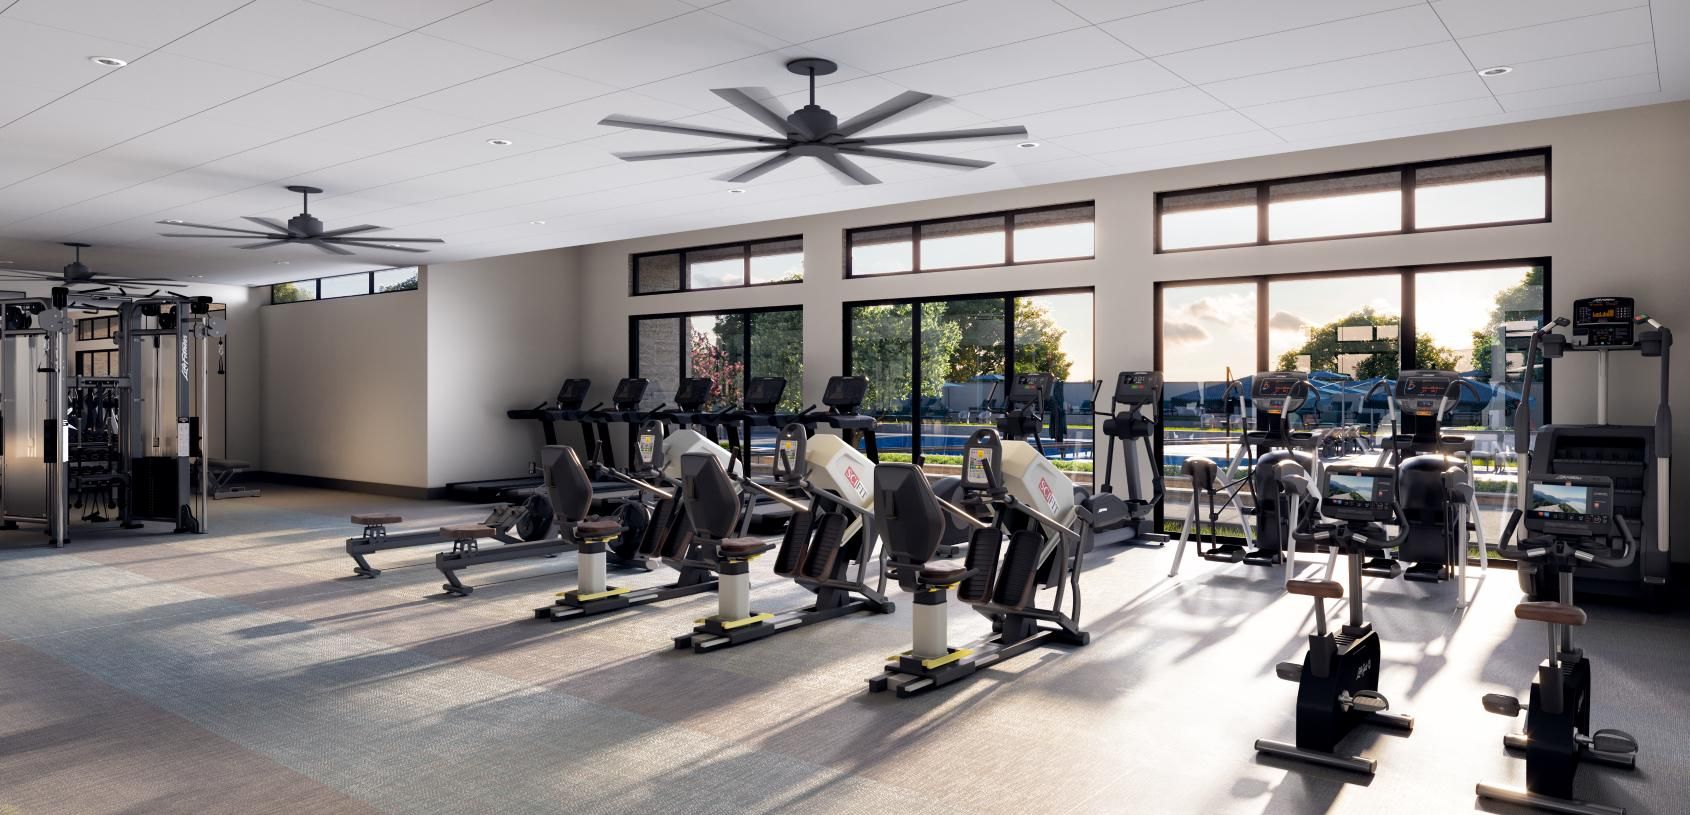 Work out at the state-of-the-art fitness center